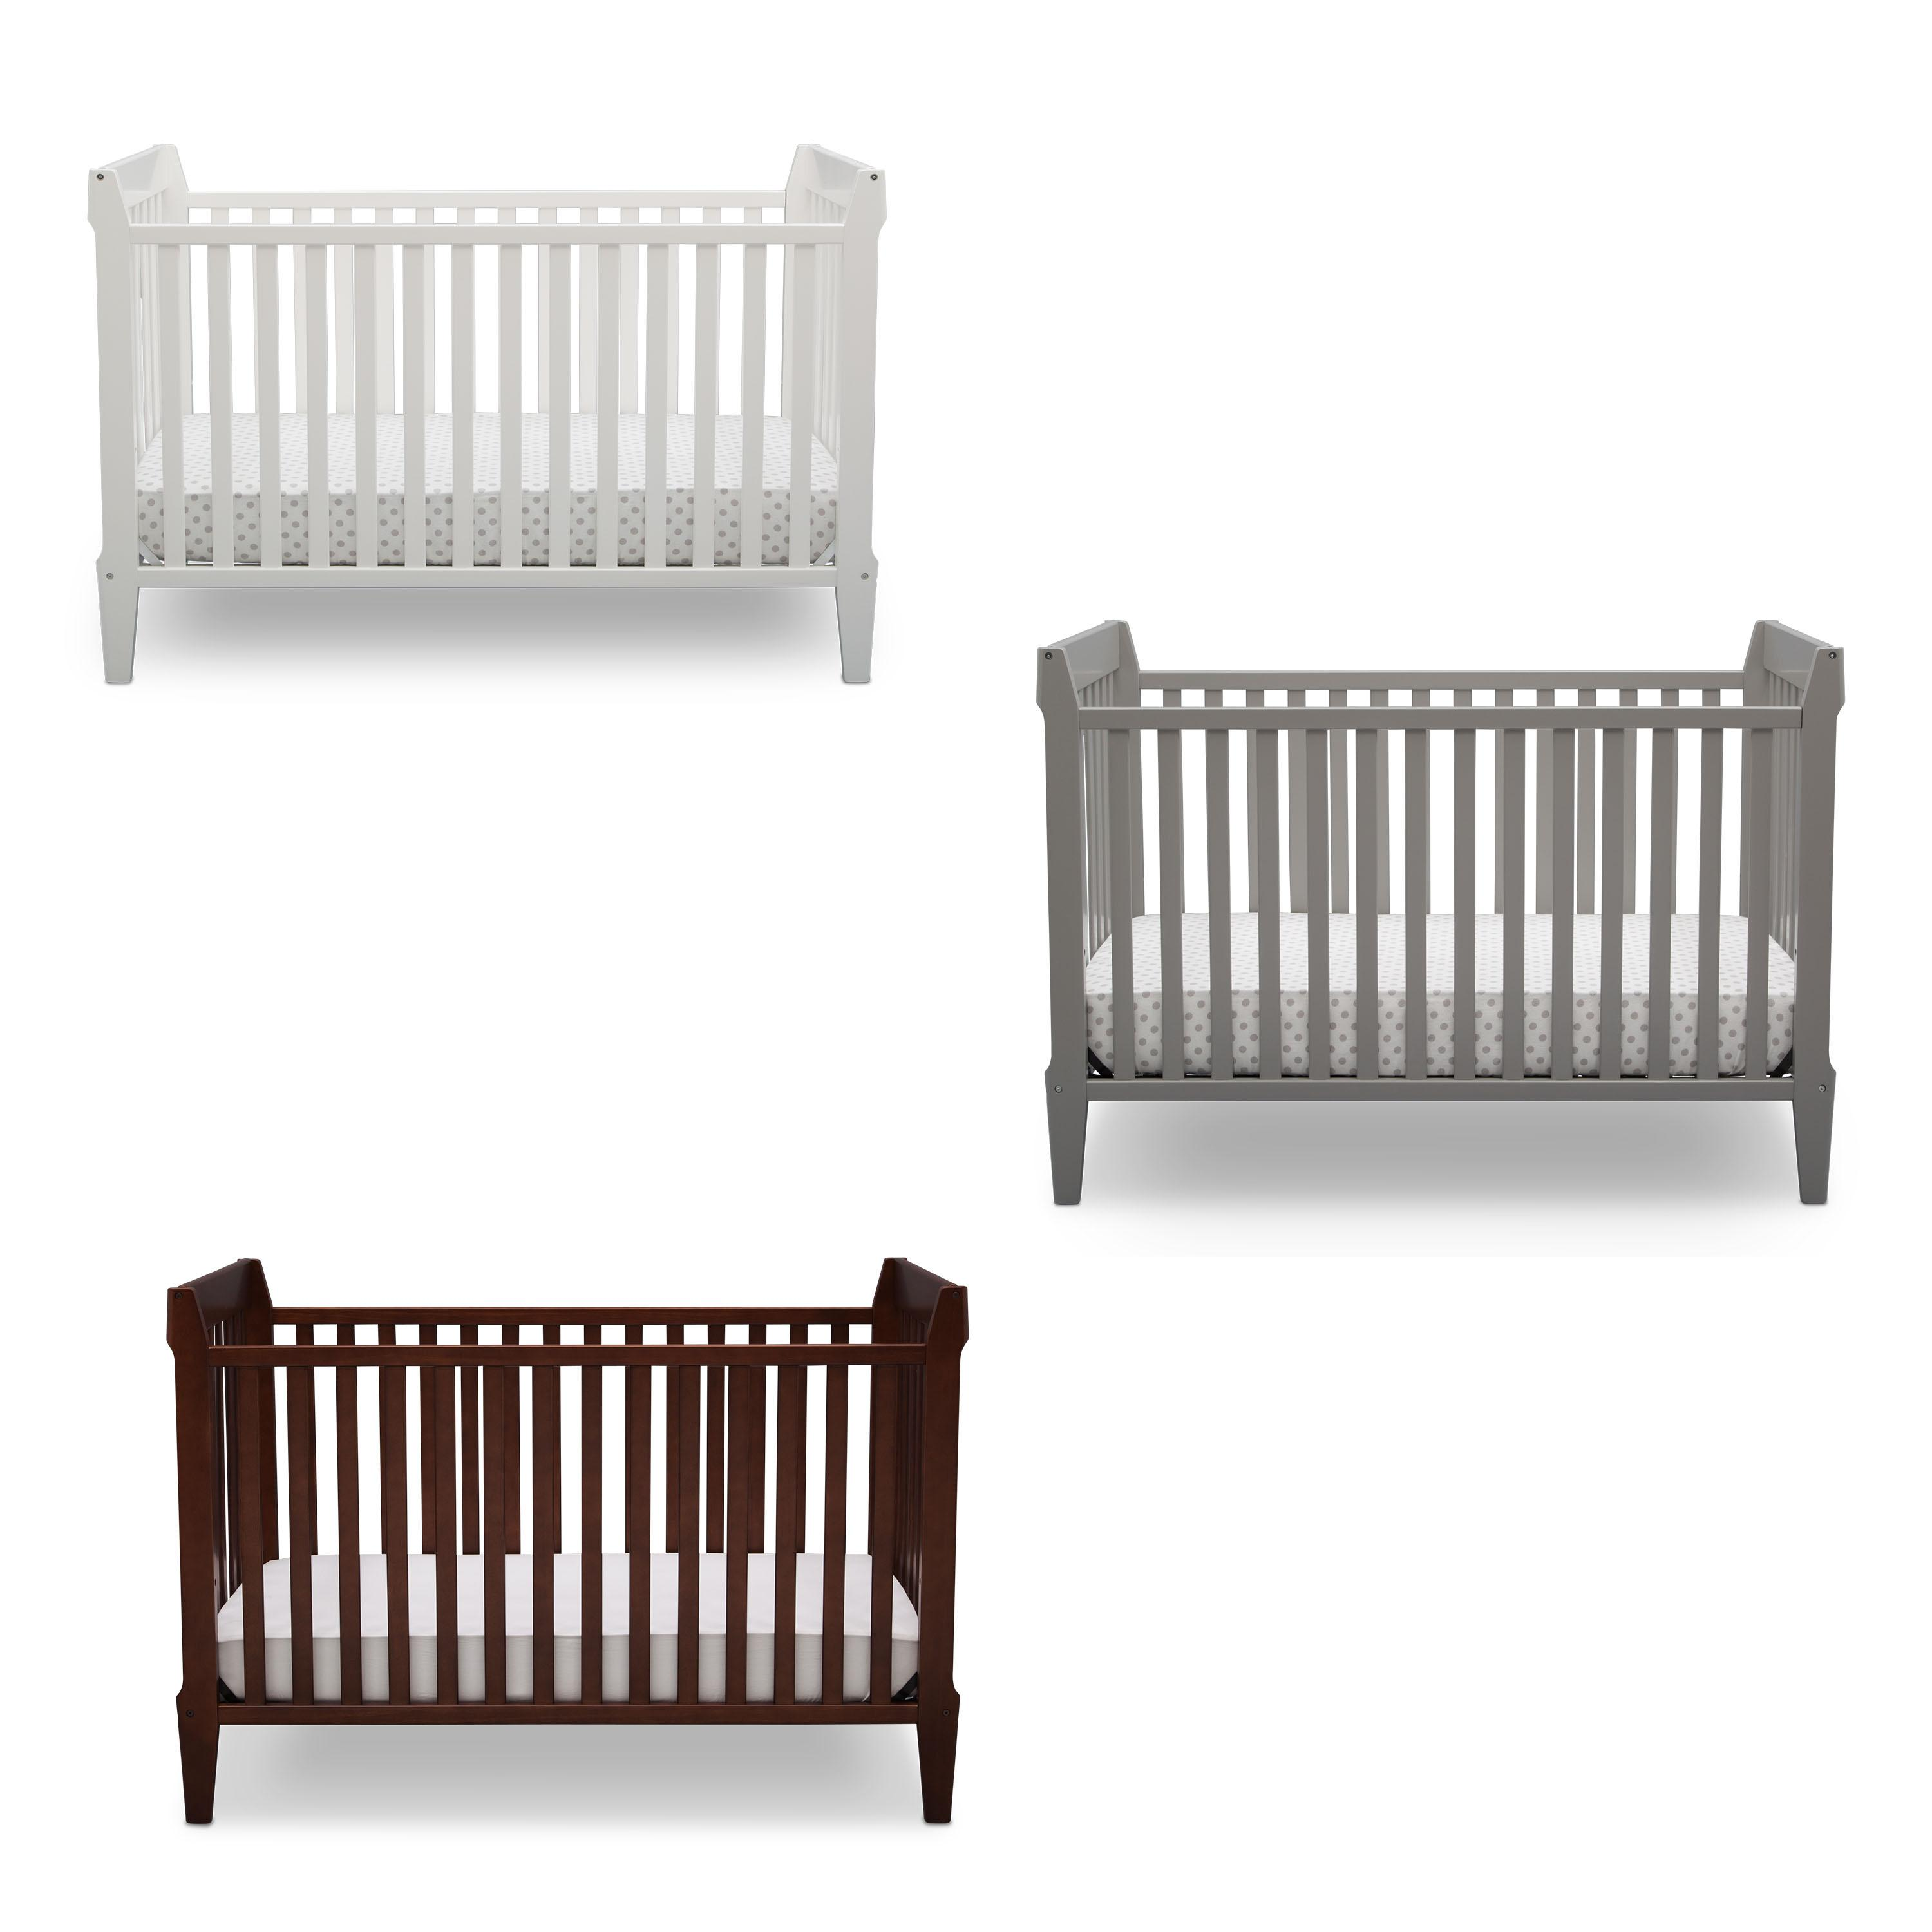 bubble s reveal cribs planter blog nursery elements century are table credenza mid ave styles chandelier space gray in wingback side levi chair and the crib that modern